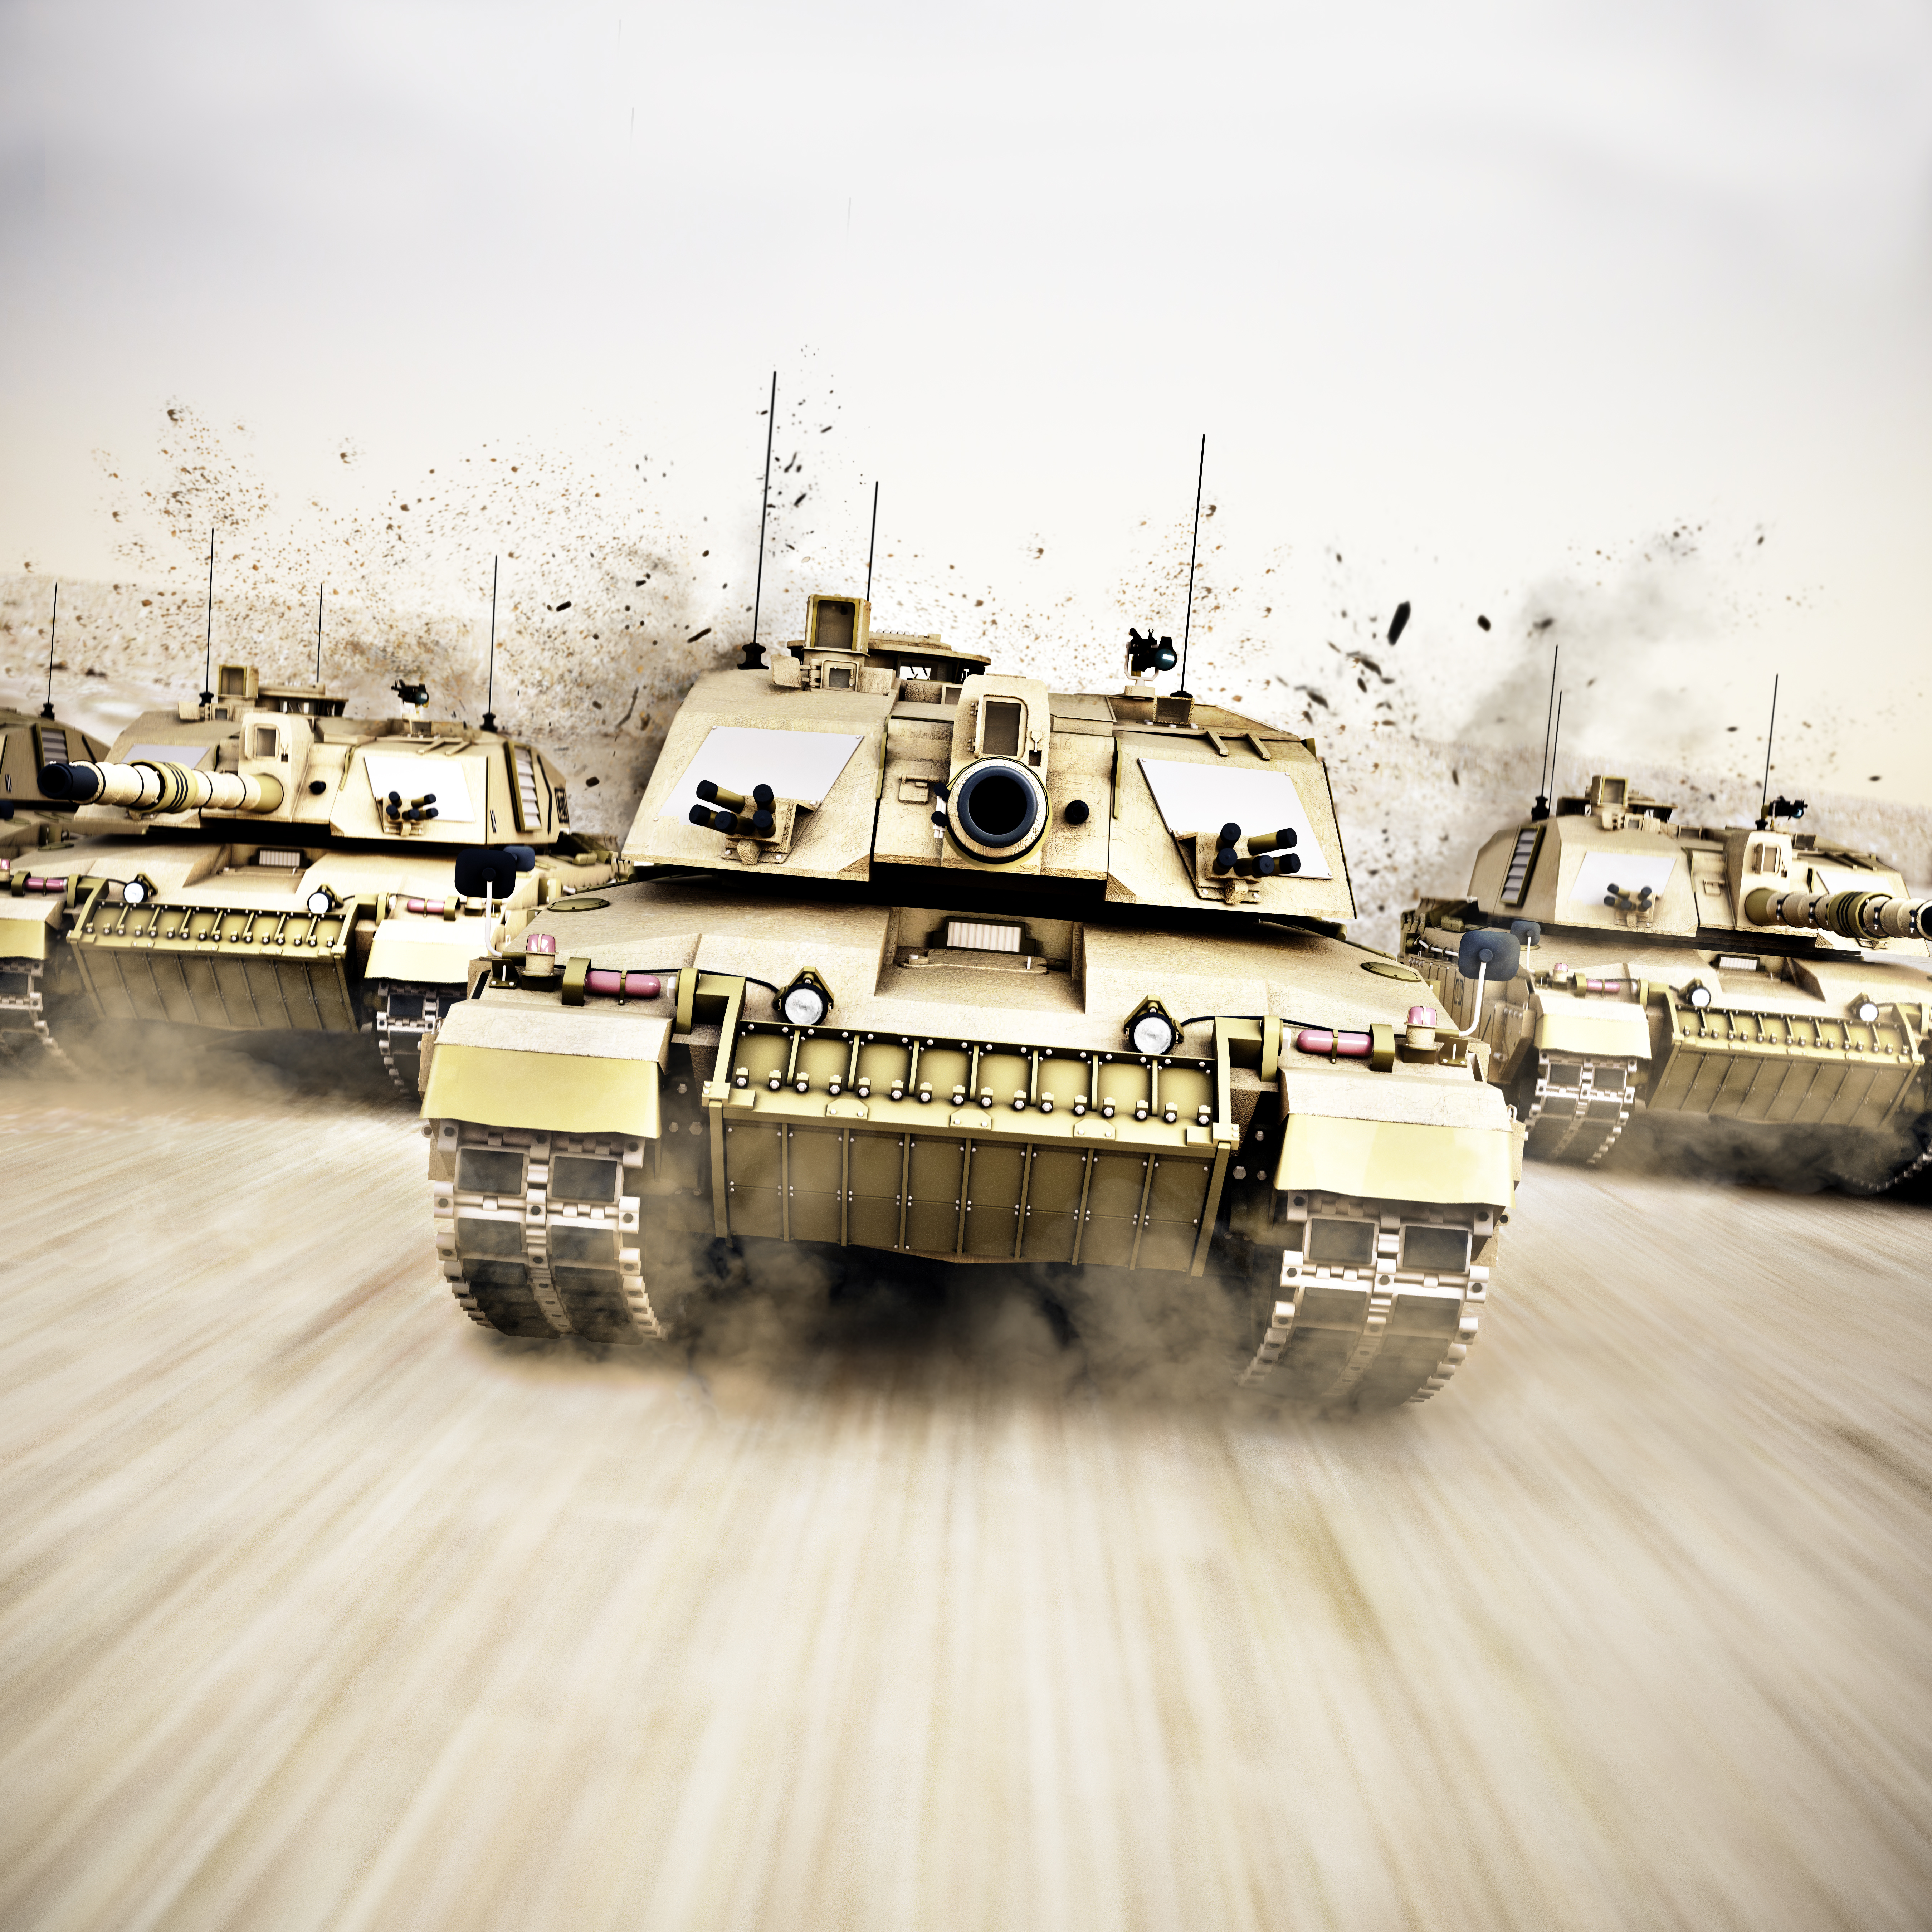 Military armored tank convoy moving at a high rate of speed with motion blur over sand. Generic photo realistic 3d rendering